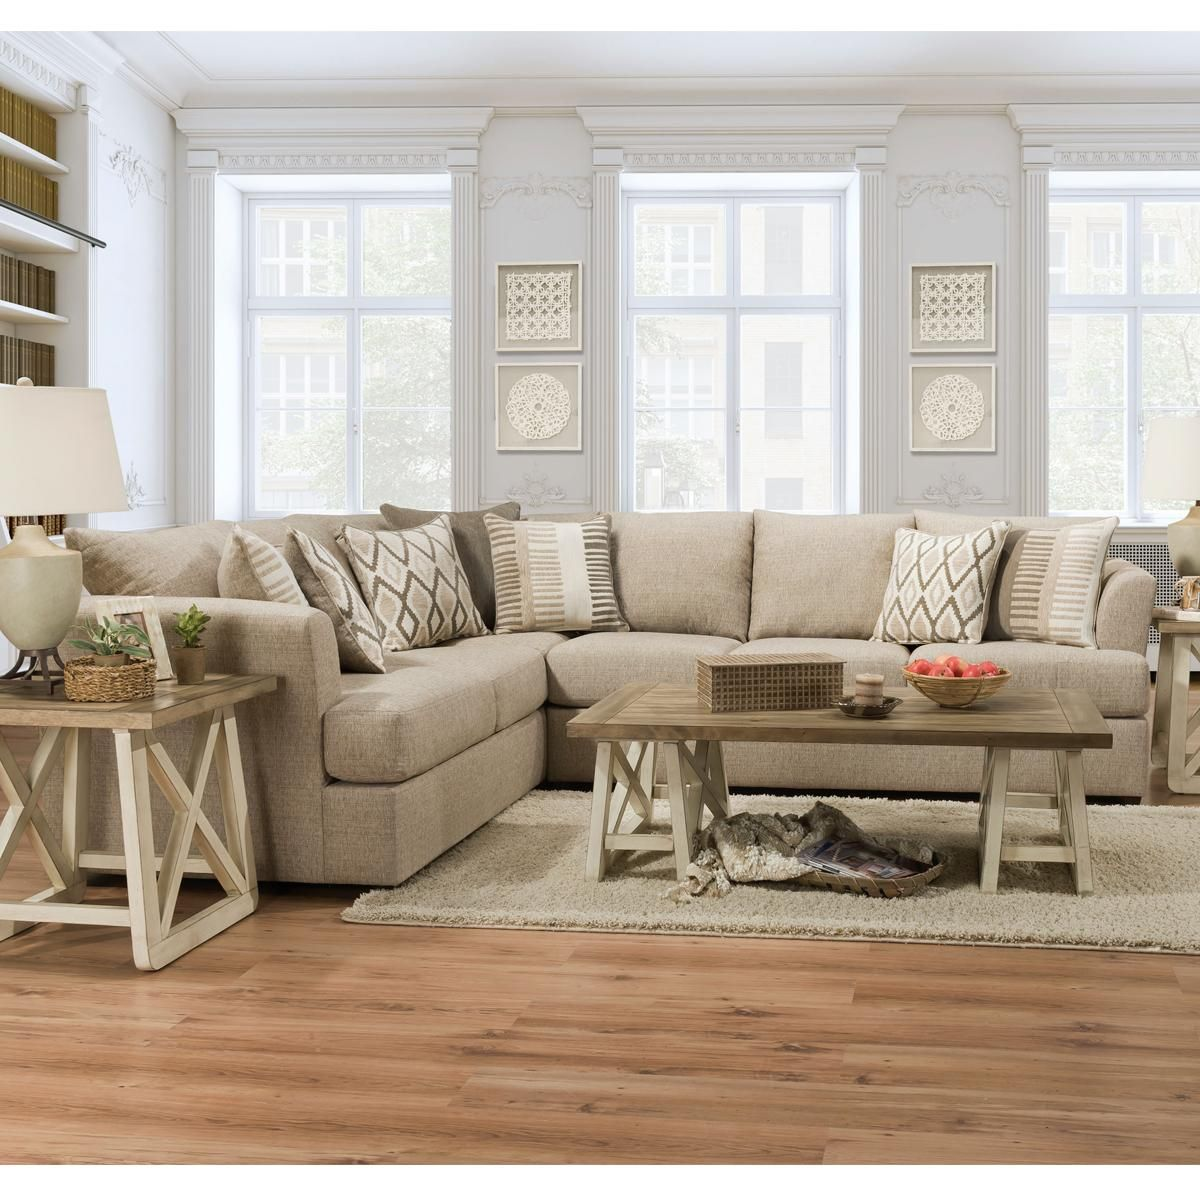 Simmons Upholstery 2 Piece Sectional In O Connor Hemp Nebraska Furniture Mart Furniture Living Room Furniture Sectional